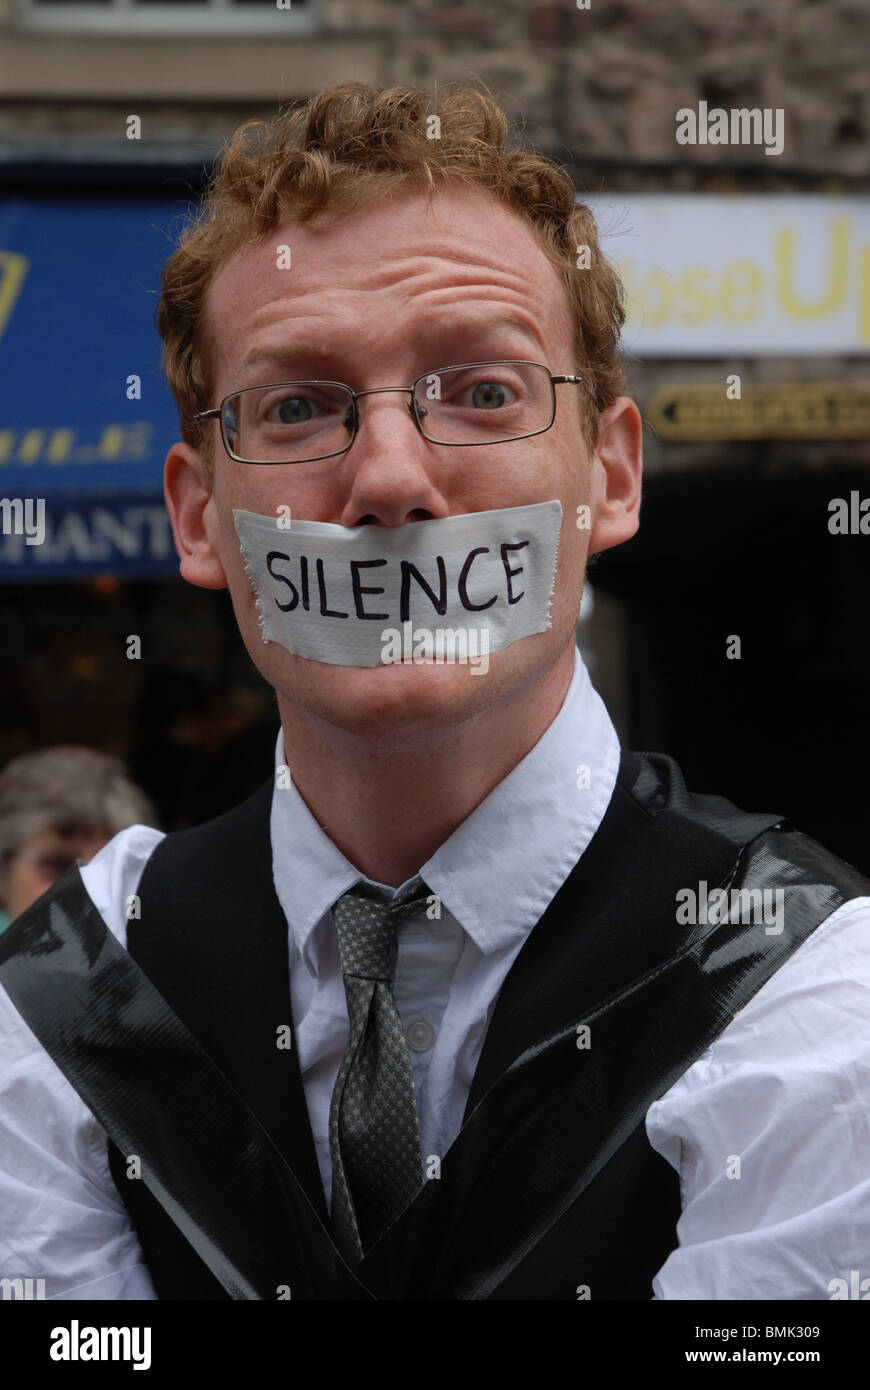 A performer with his mouth taped publicizing his show from the Edinburgh Fringe Festival. - Stock Image